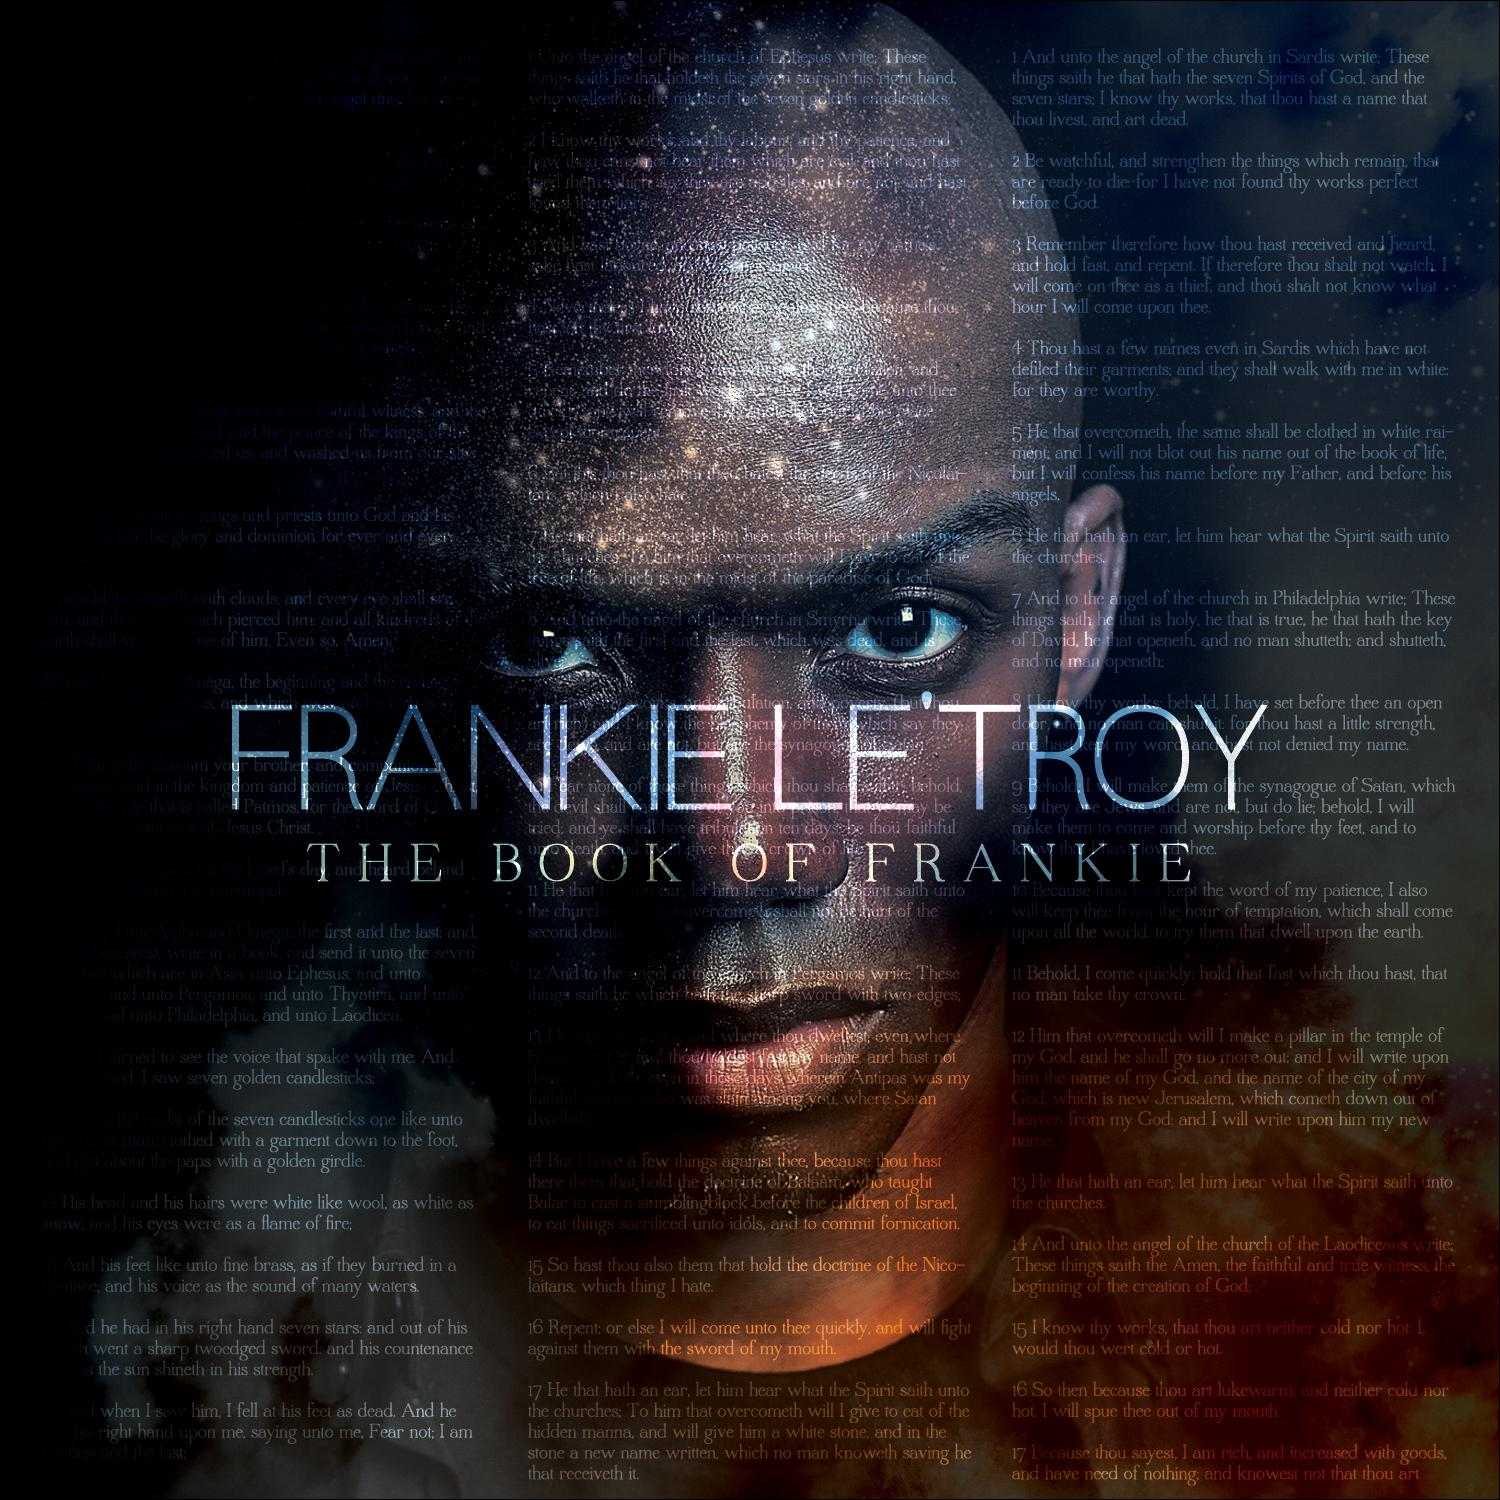 The Book of Frankie